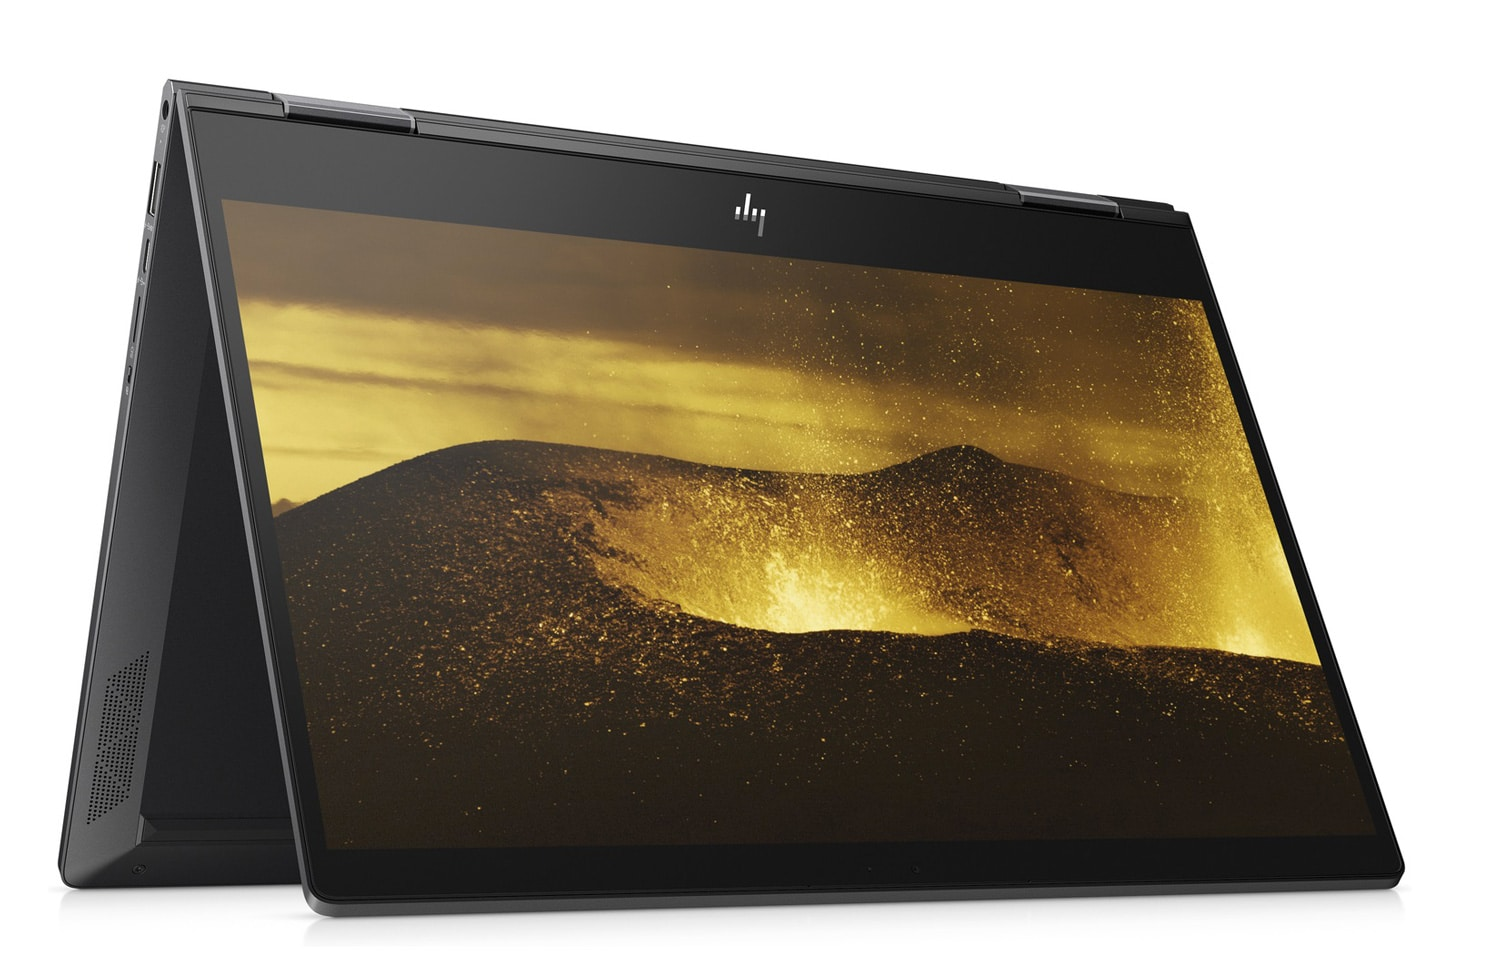 HP Envy x360 13-ar0002nf, 13 pouces Tablette AMD (722€)